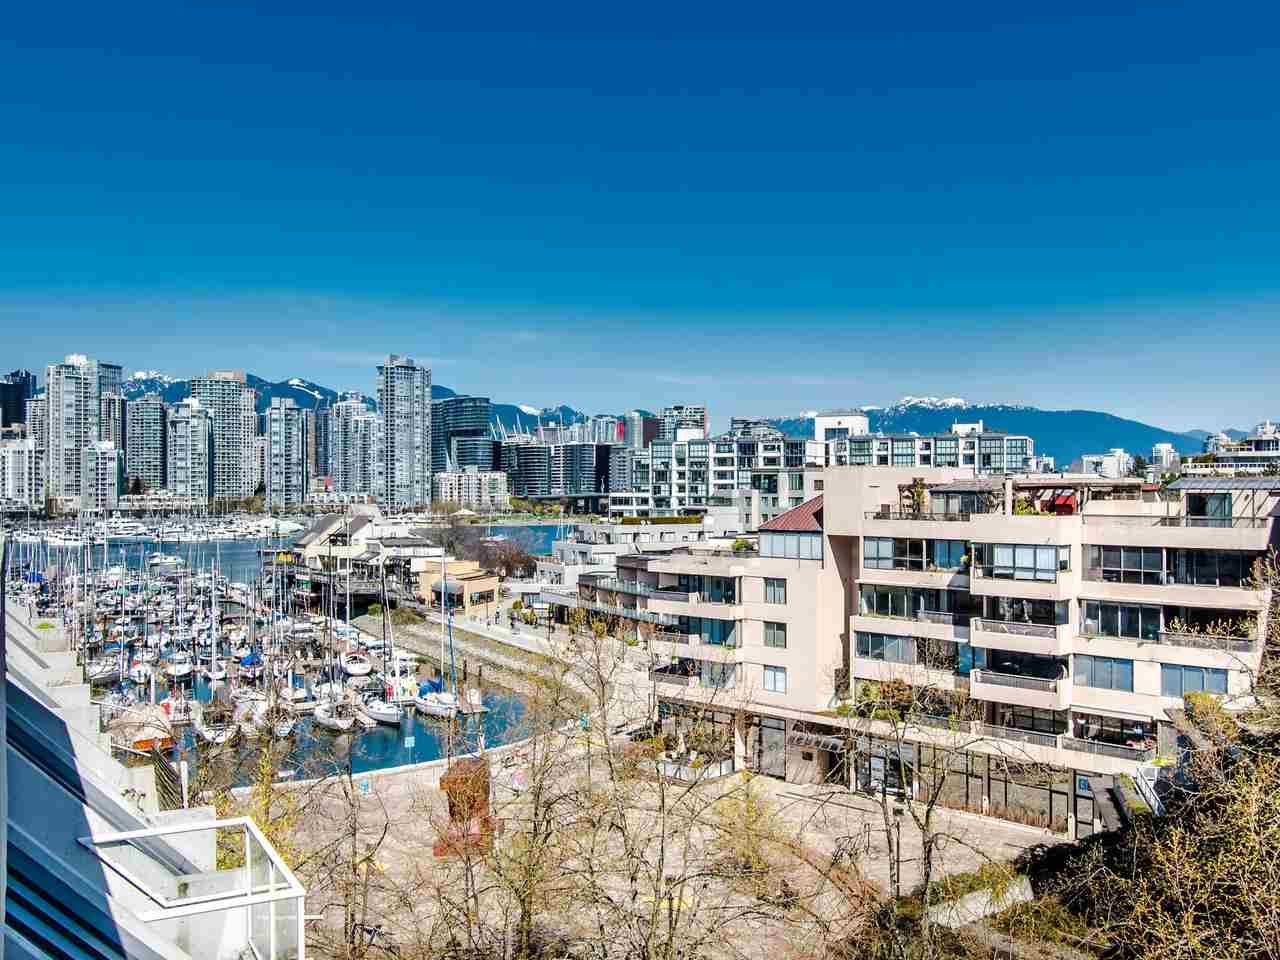 """Main Photo: 303 673 MARKET Hill in Vancouver: False Creek Townhouse for sale in """"MARKET HILL TERRACE"""" (Vancouver West)  : MLS®# R2509909"""